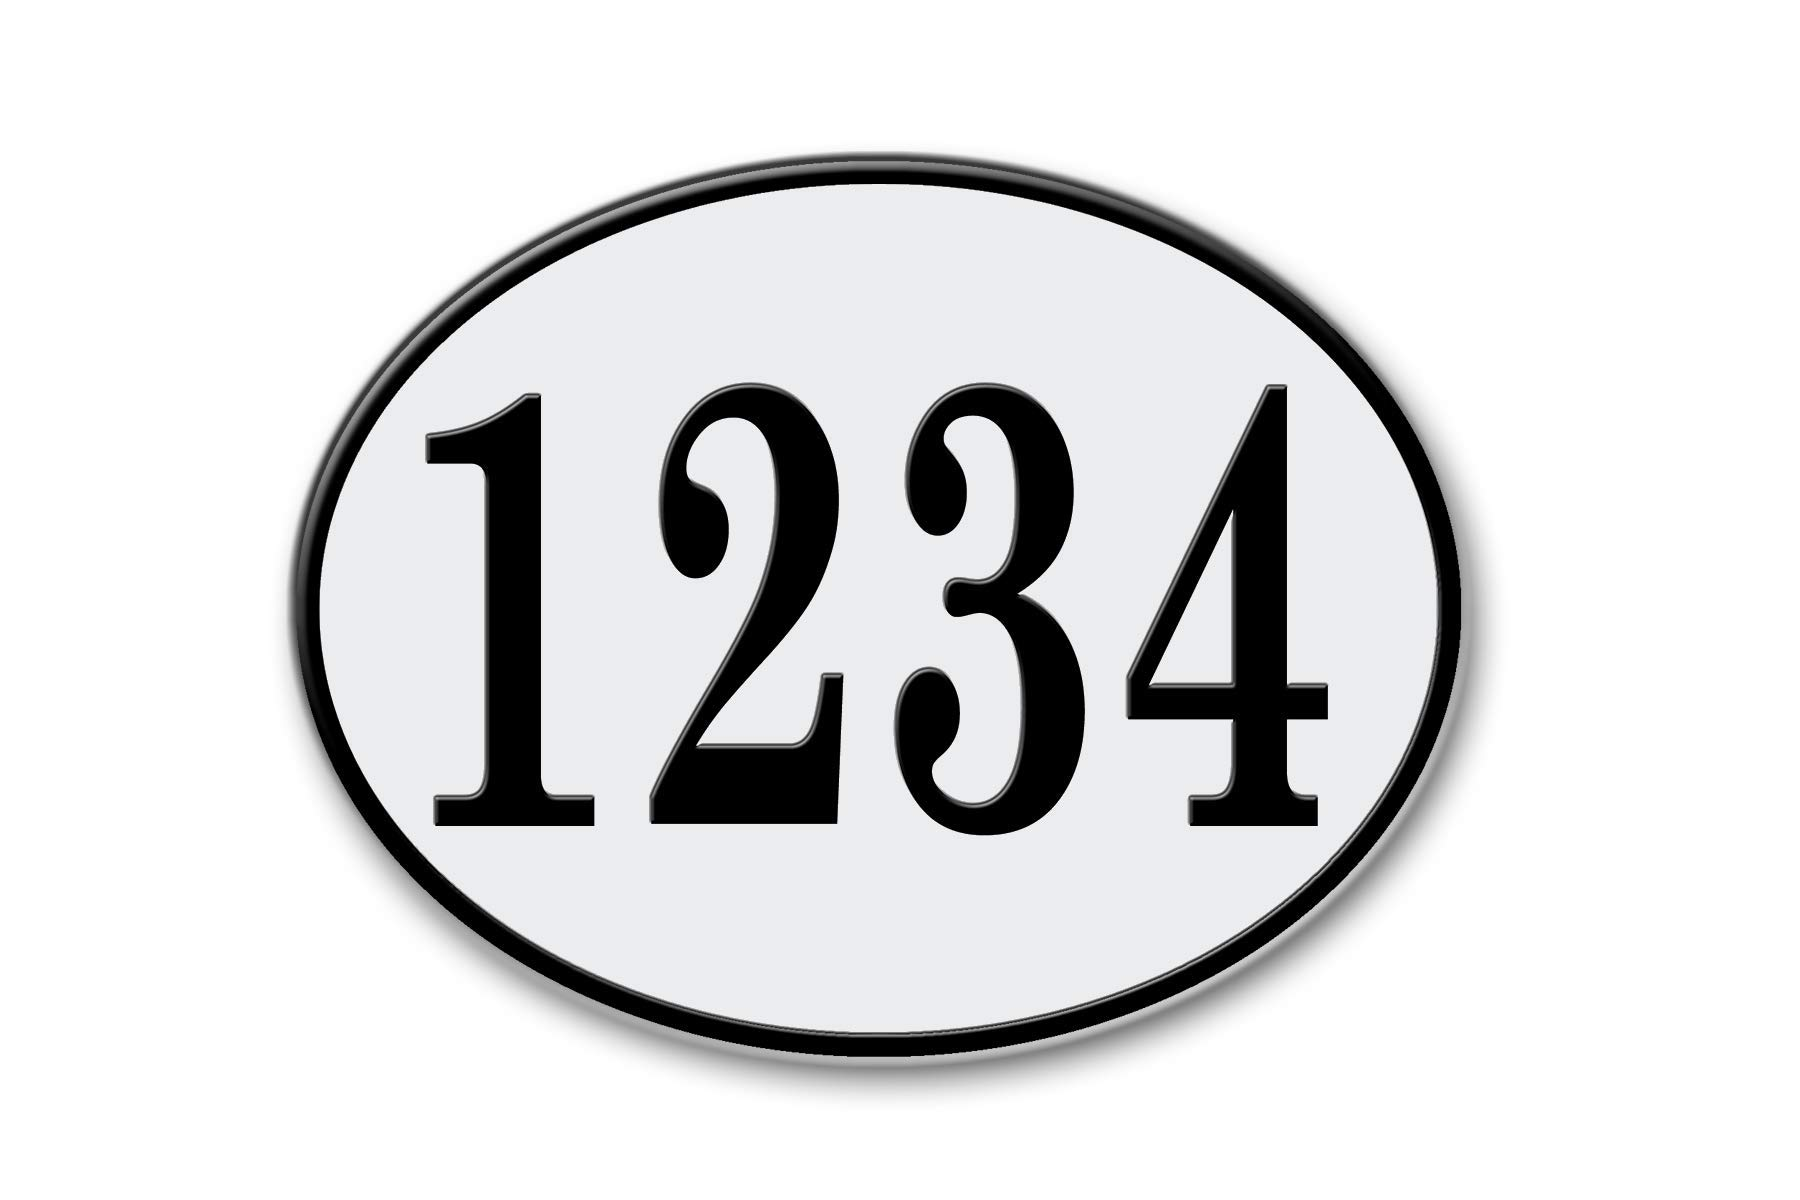 West Coast Curb-N-Sign Oval Reflective Address Plaque (White)